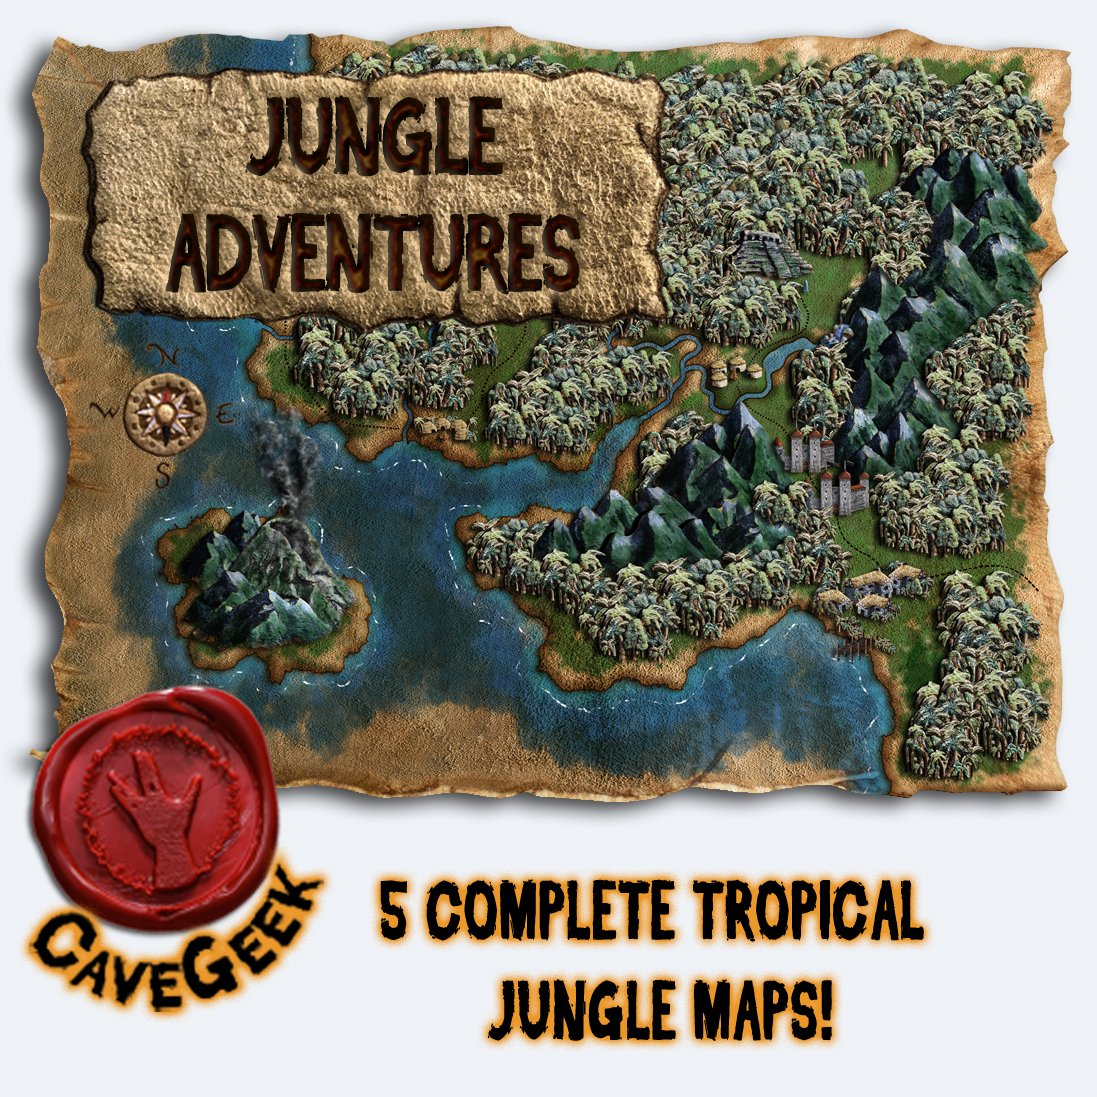 My new map pack: Jungle Adventures, is now available on my web store! 5 complete maps full temples, ape shaped mountains, native villages, settlers, and more! . #DnD #ttrpgs #jungle #ancienttemple #cartographer #cavegeekart #fantasycartography #fantasymaps #mapmaker #Roll20 https://t.co/Naz8AC8cdq